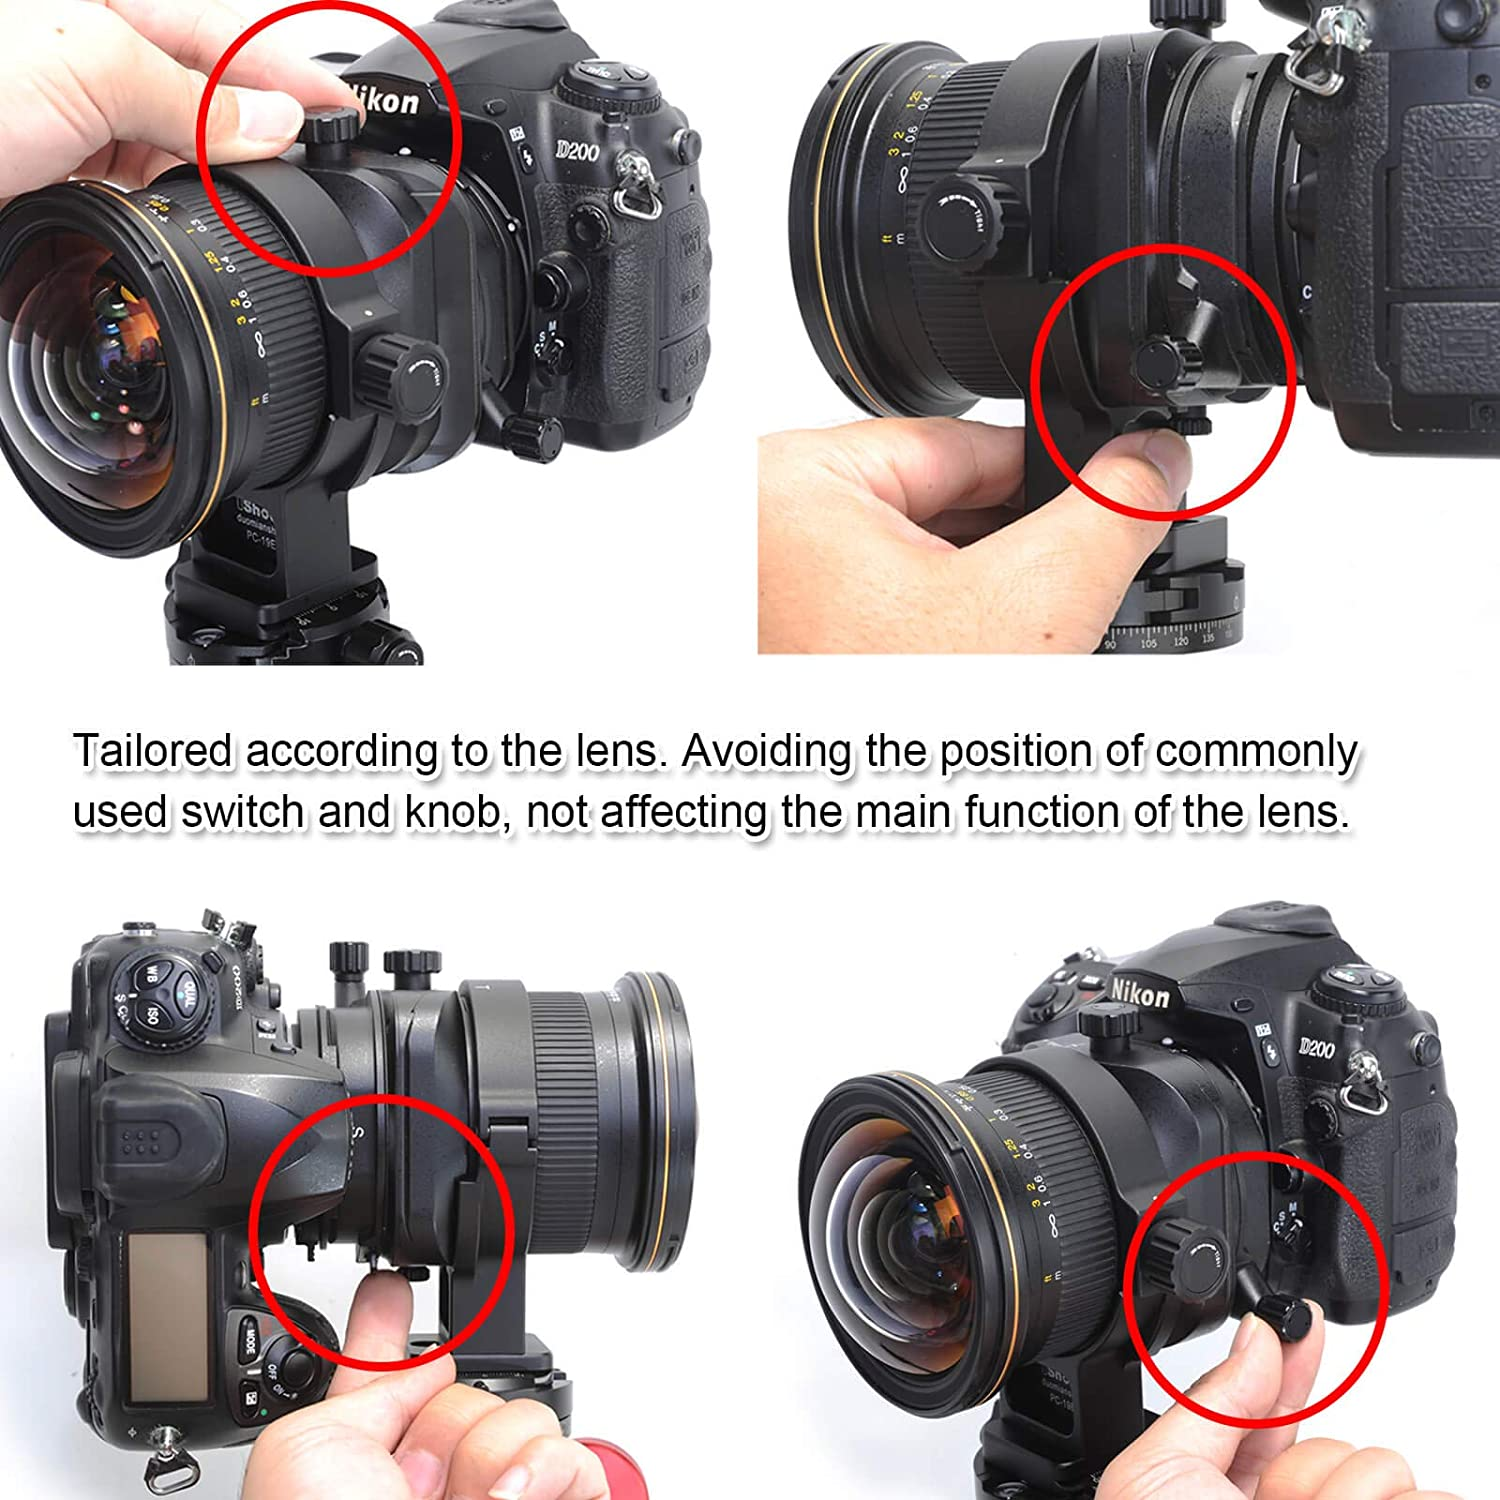 Camera Lens Collar Support for Nikon PC NIKKOR 19mm f//4E ED Tilt-Shift Lens Tripod Mount Ring Built-in 50mm Quick Release Plate Compatible with Tripod Ball Head of Arca-Swiss PMG SUNWAYFOTO